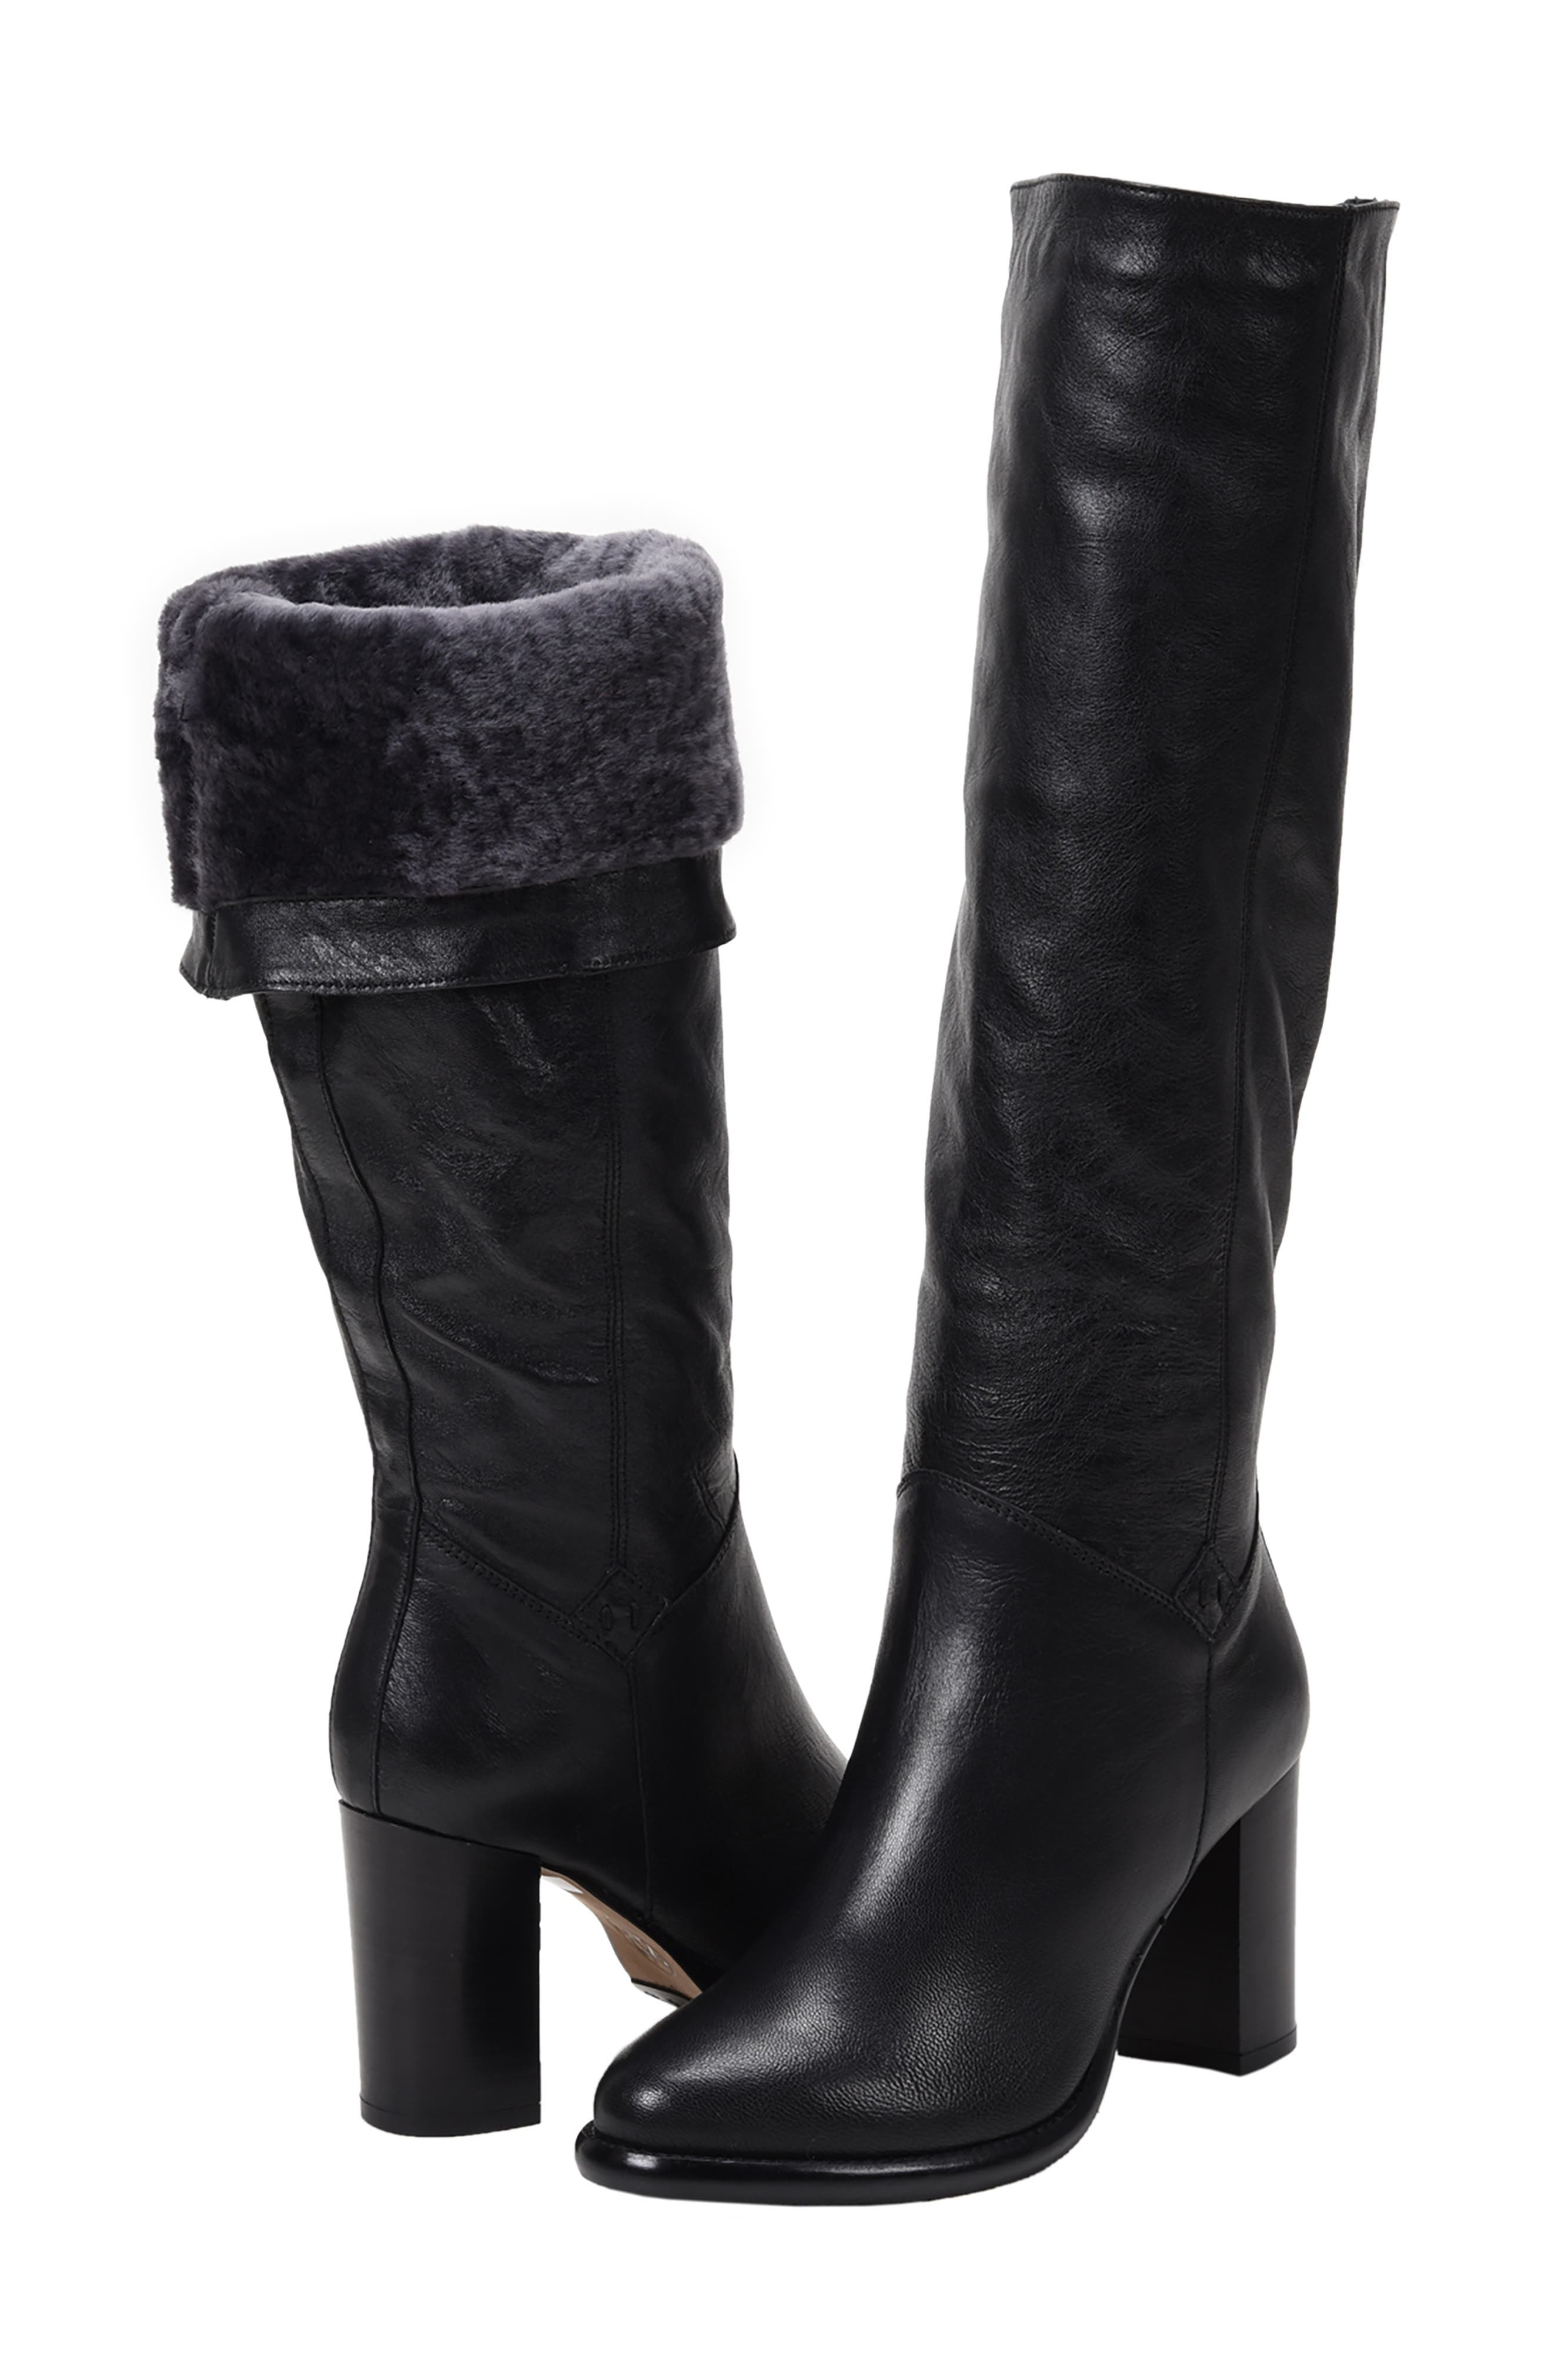 Michela SP Waterproof Genuine Shearling Lined Boot,                             Alternate thumbnail 7, color,                             BLACK METALLIC LEATHER